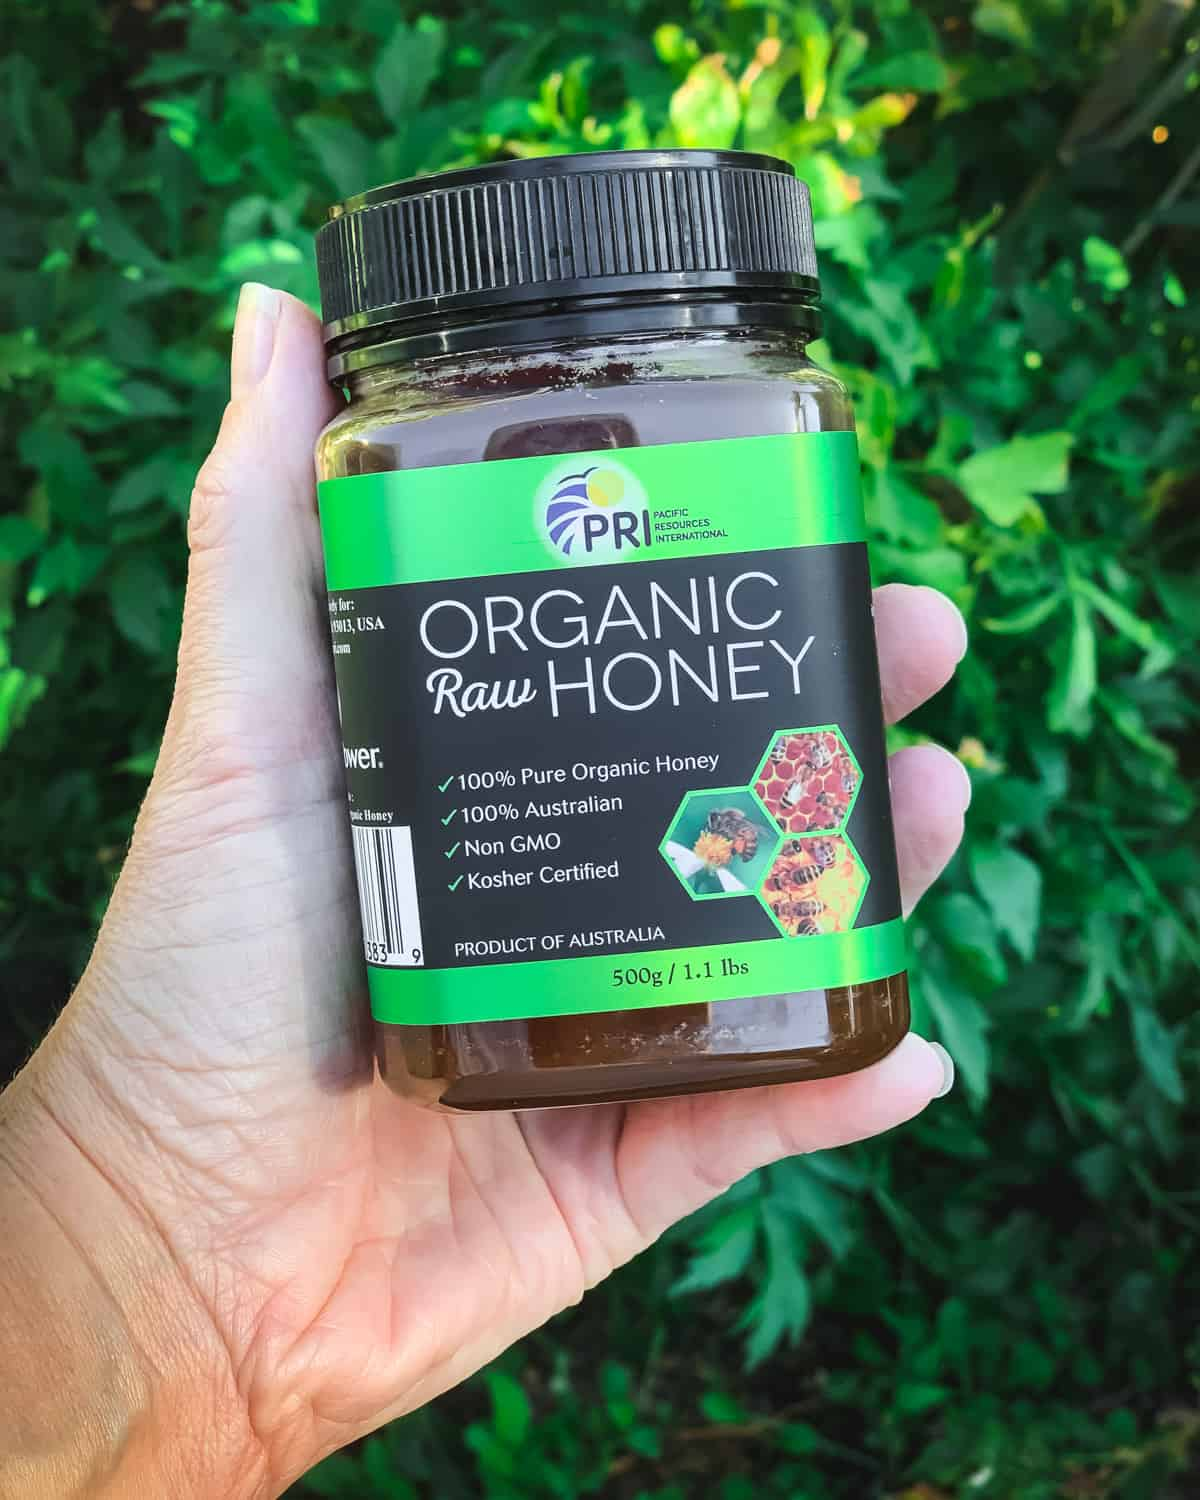 a hand holding a container of organic raw honey from pri